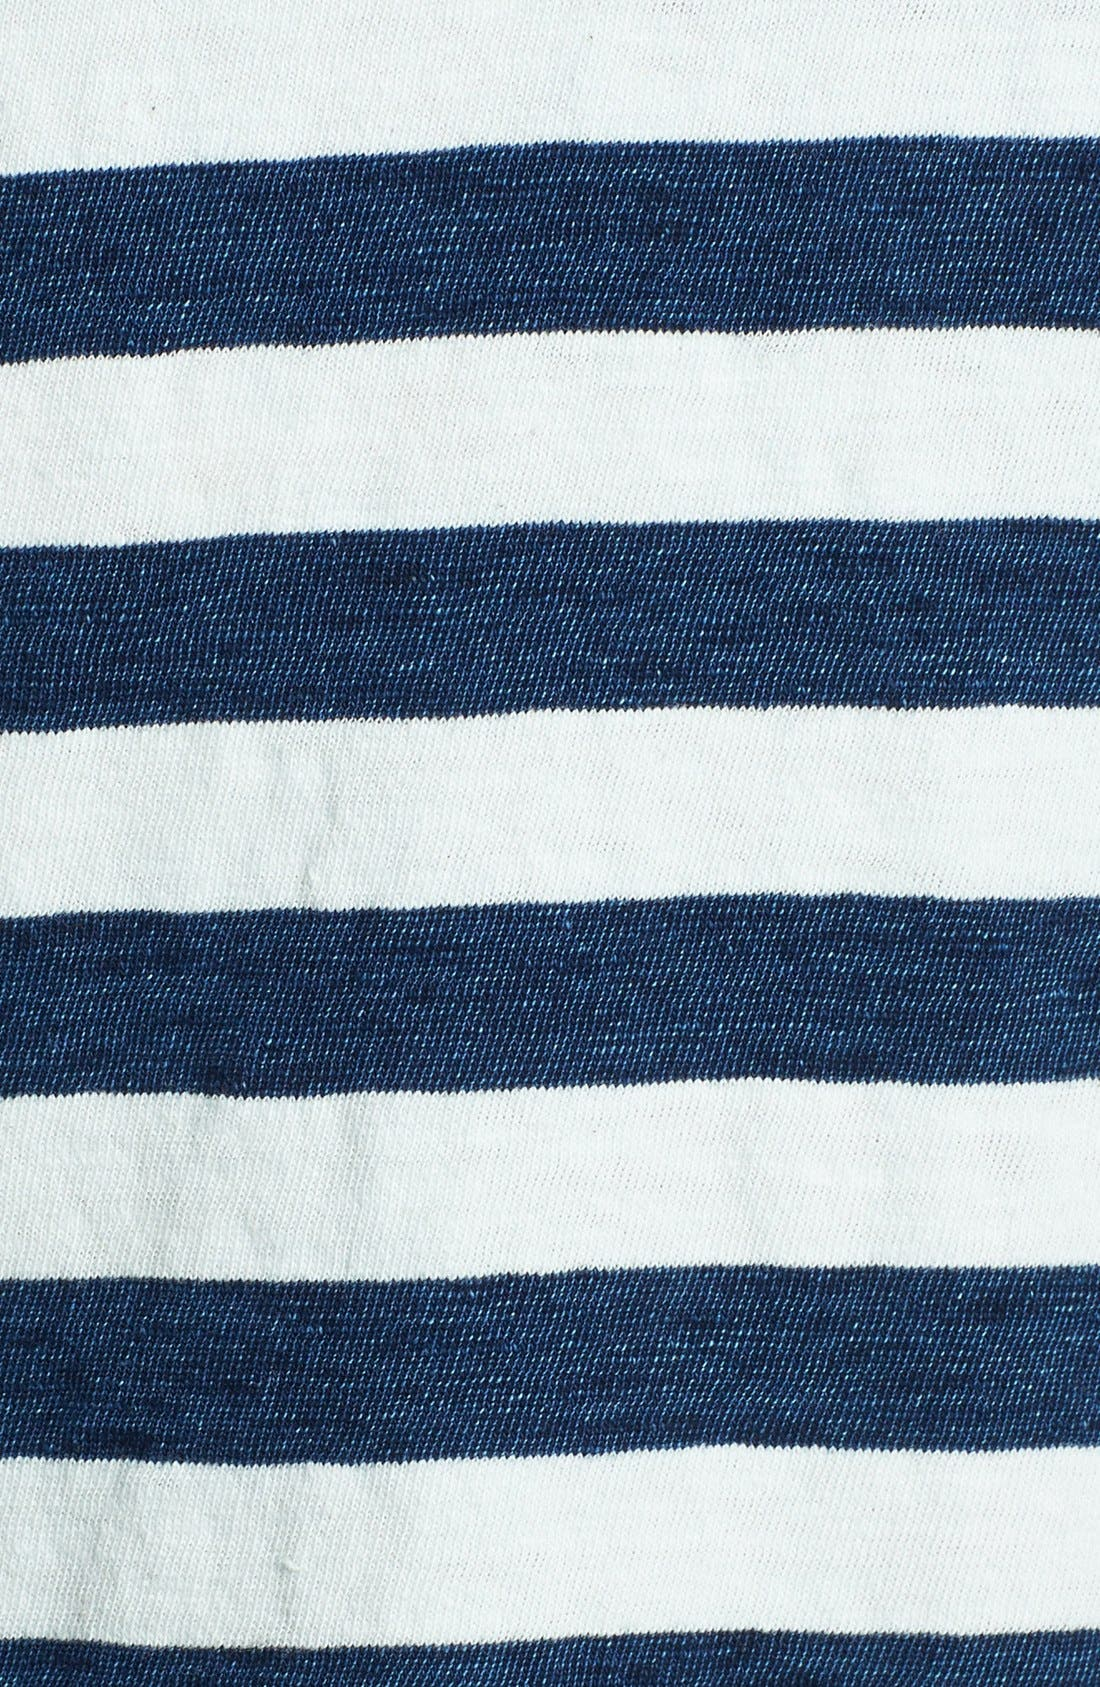 Alternate Image 3  - Splendid Stripe Scoop Neck Cotton Tee